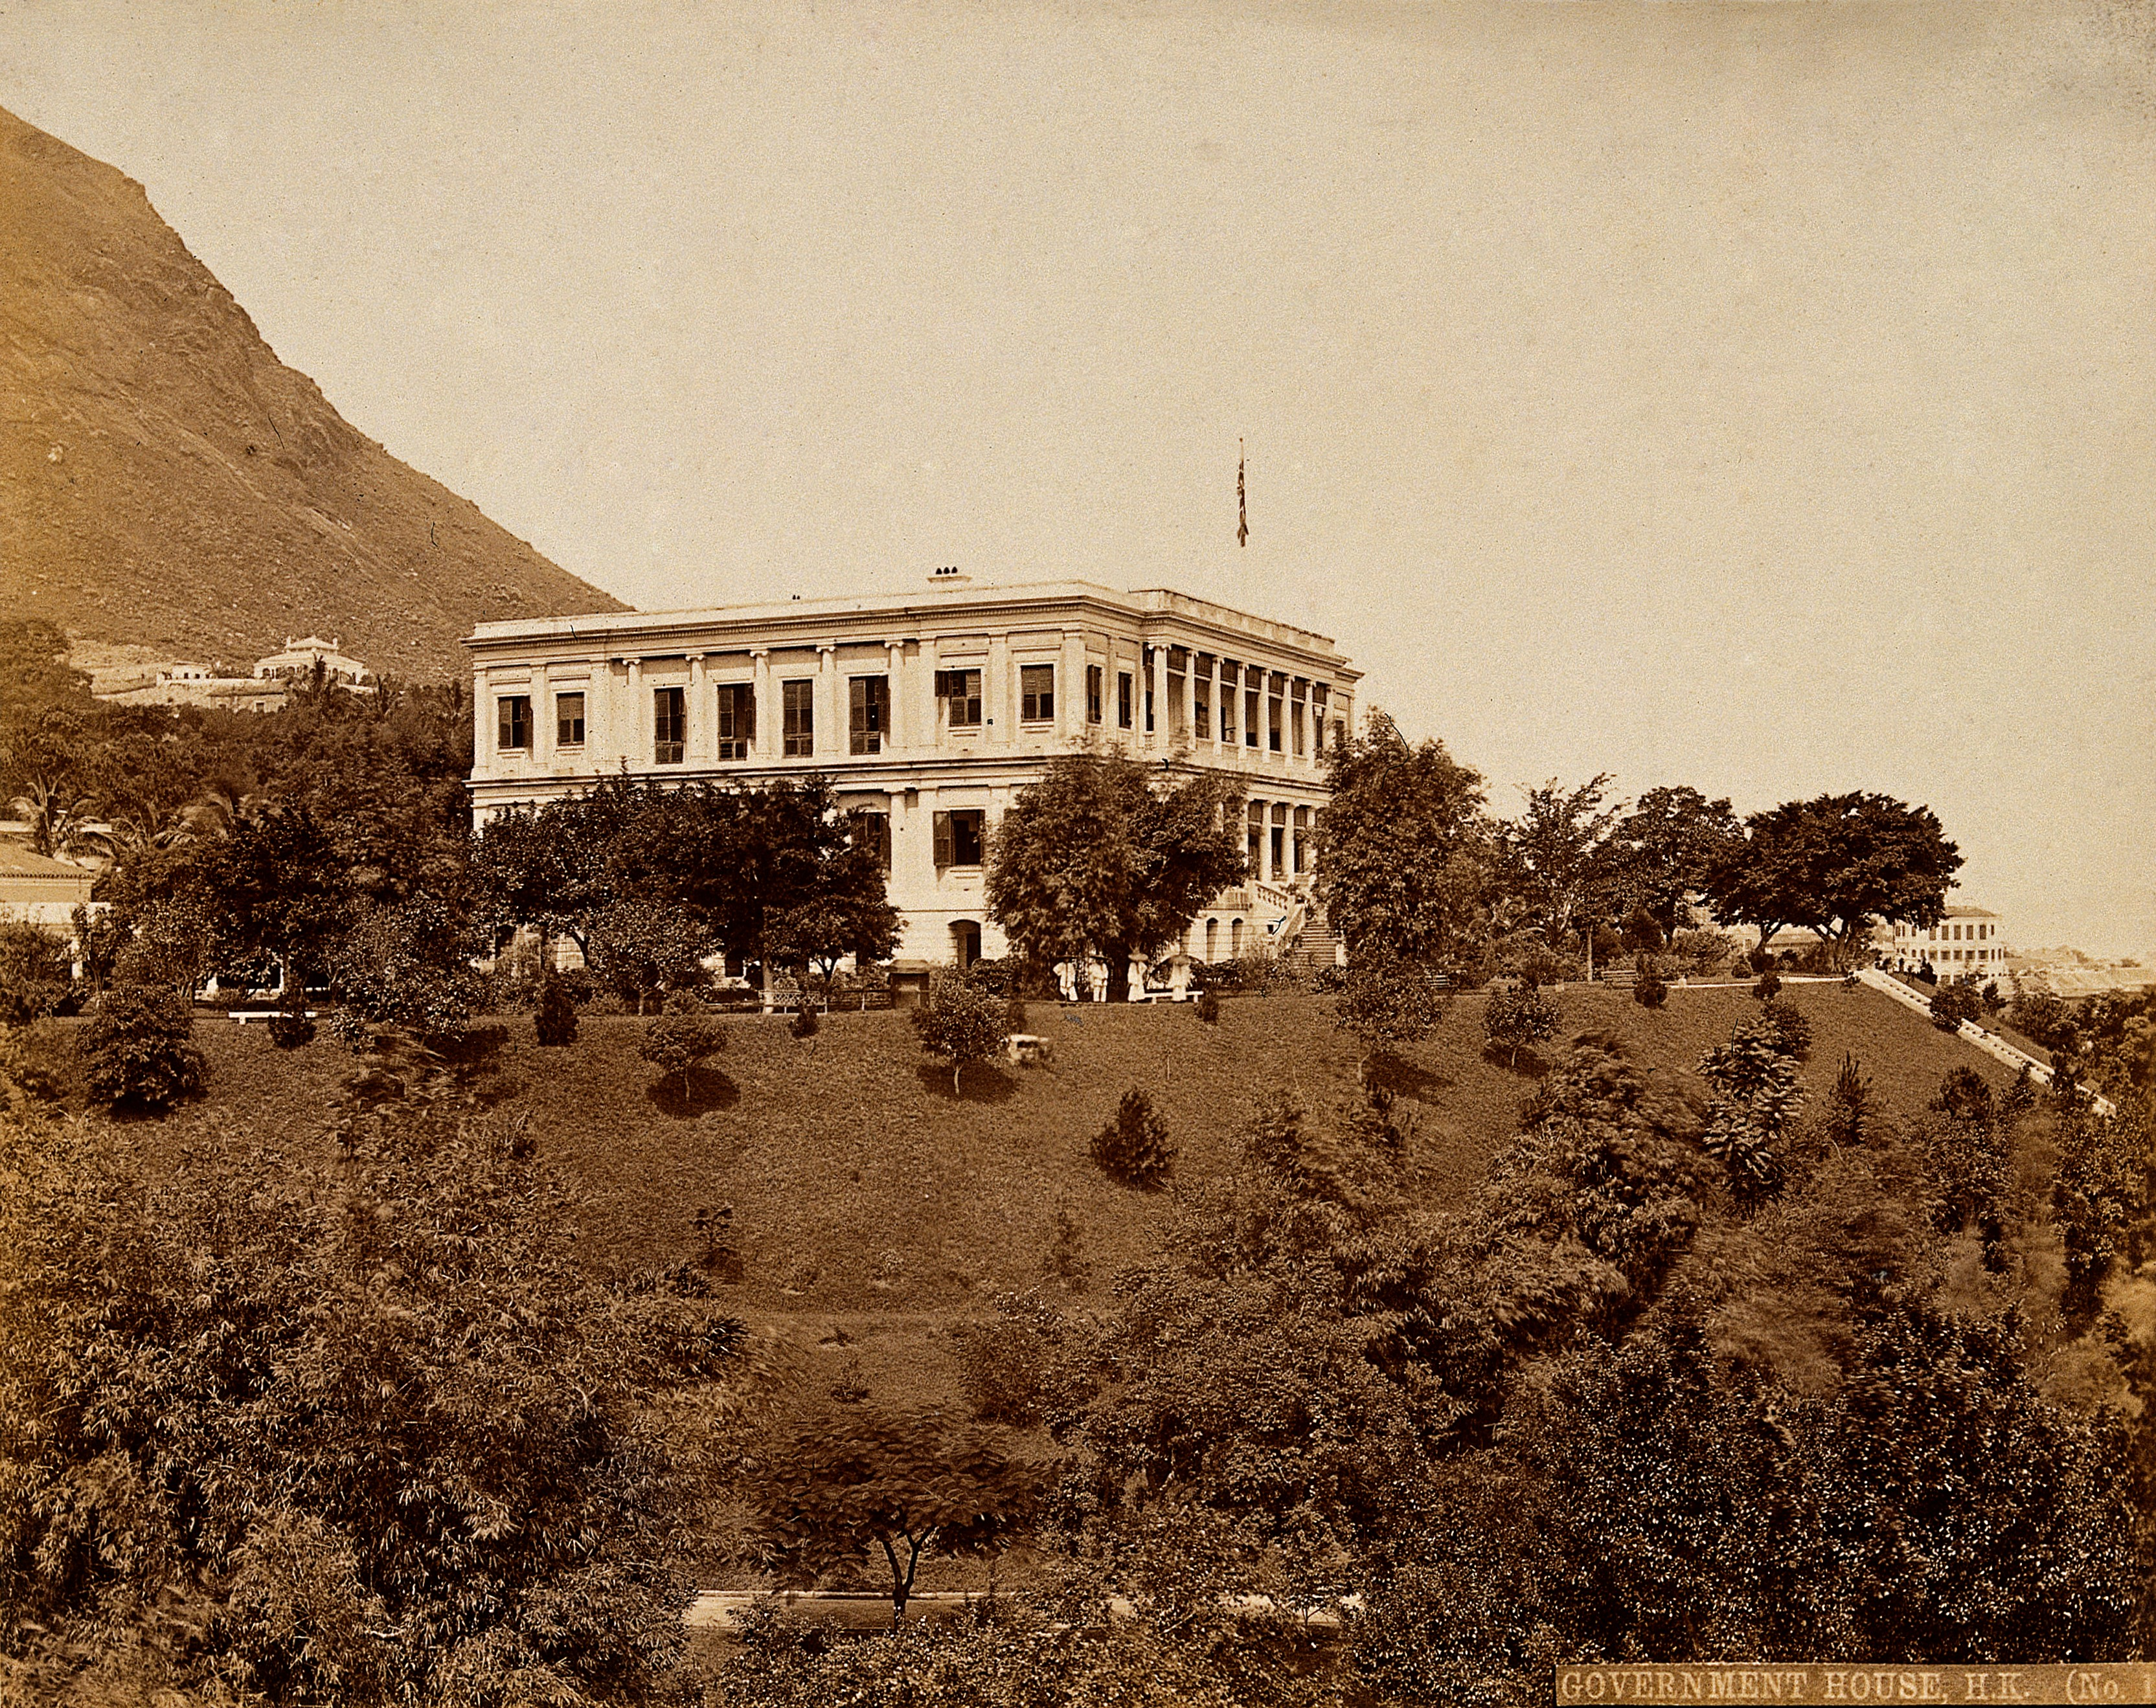 Government House and grounds at Hong Kong, photographed in 1873.